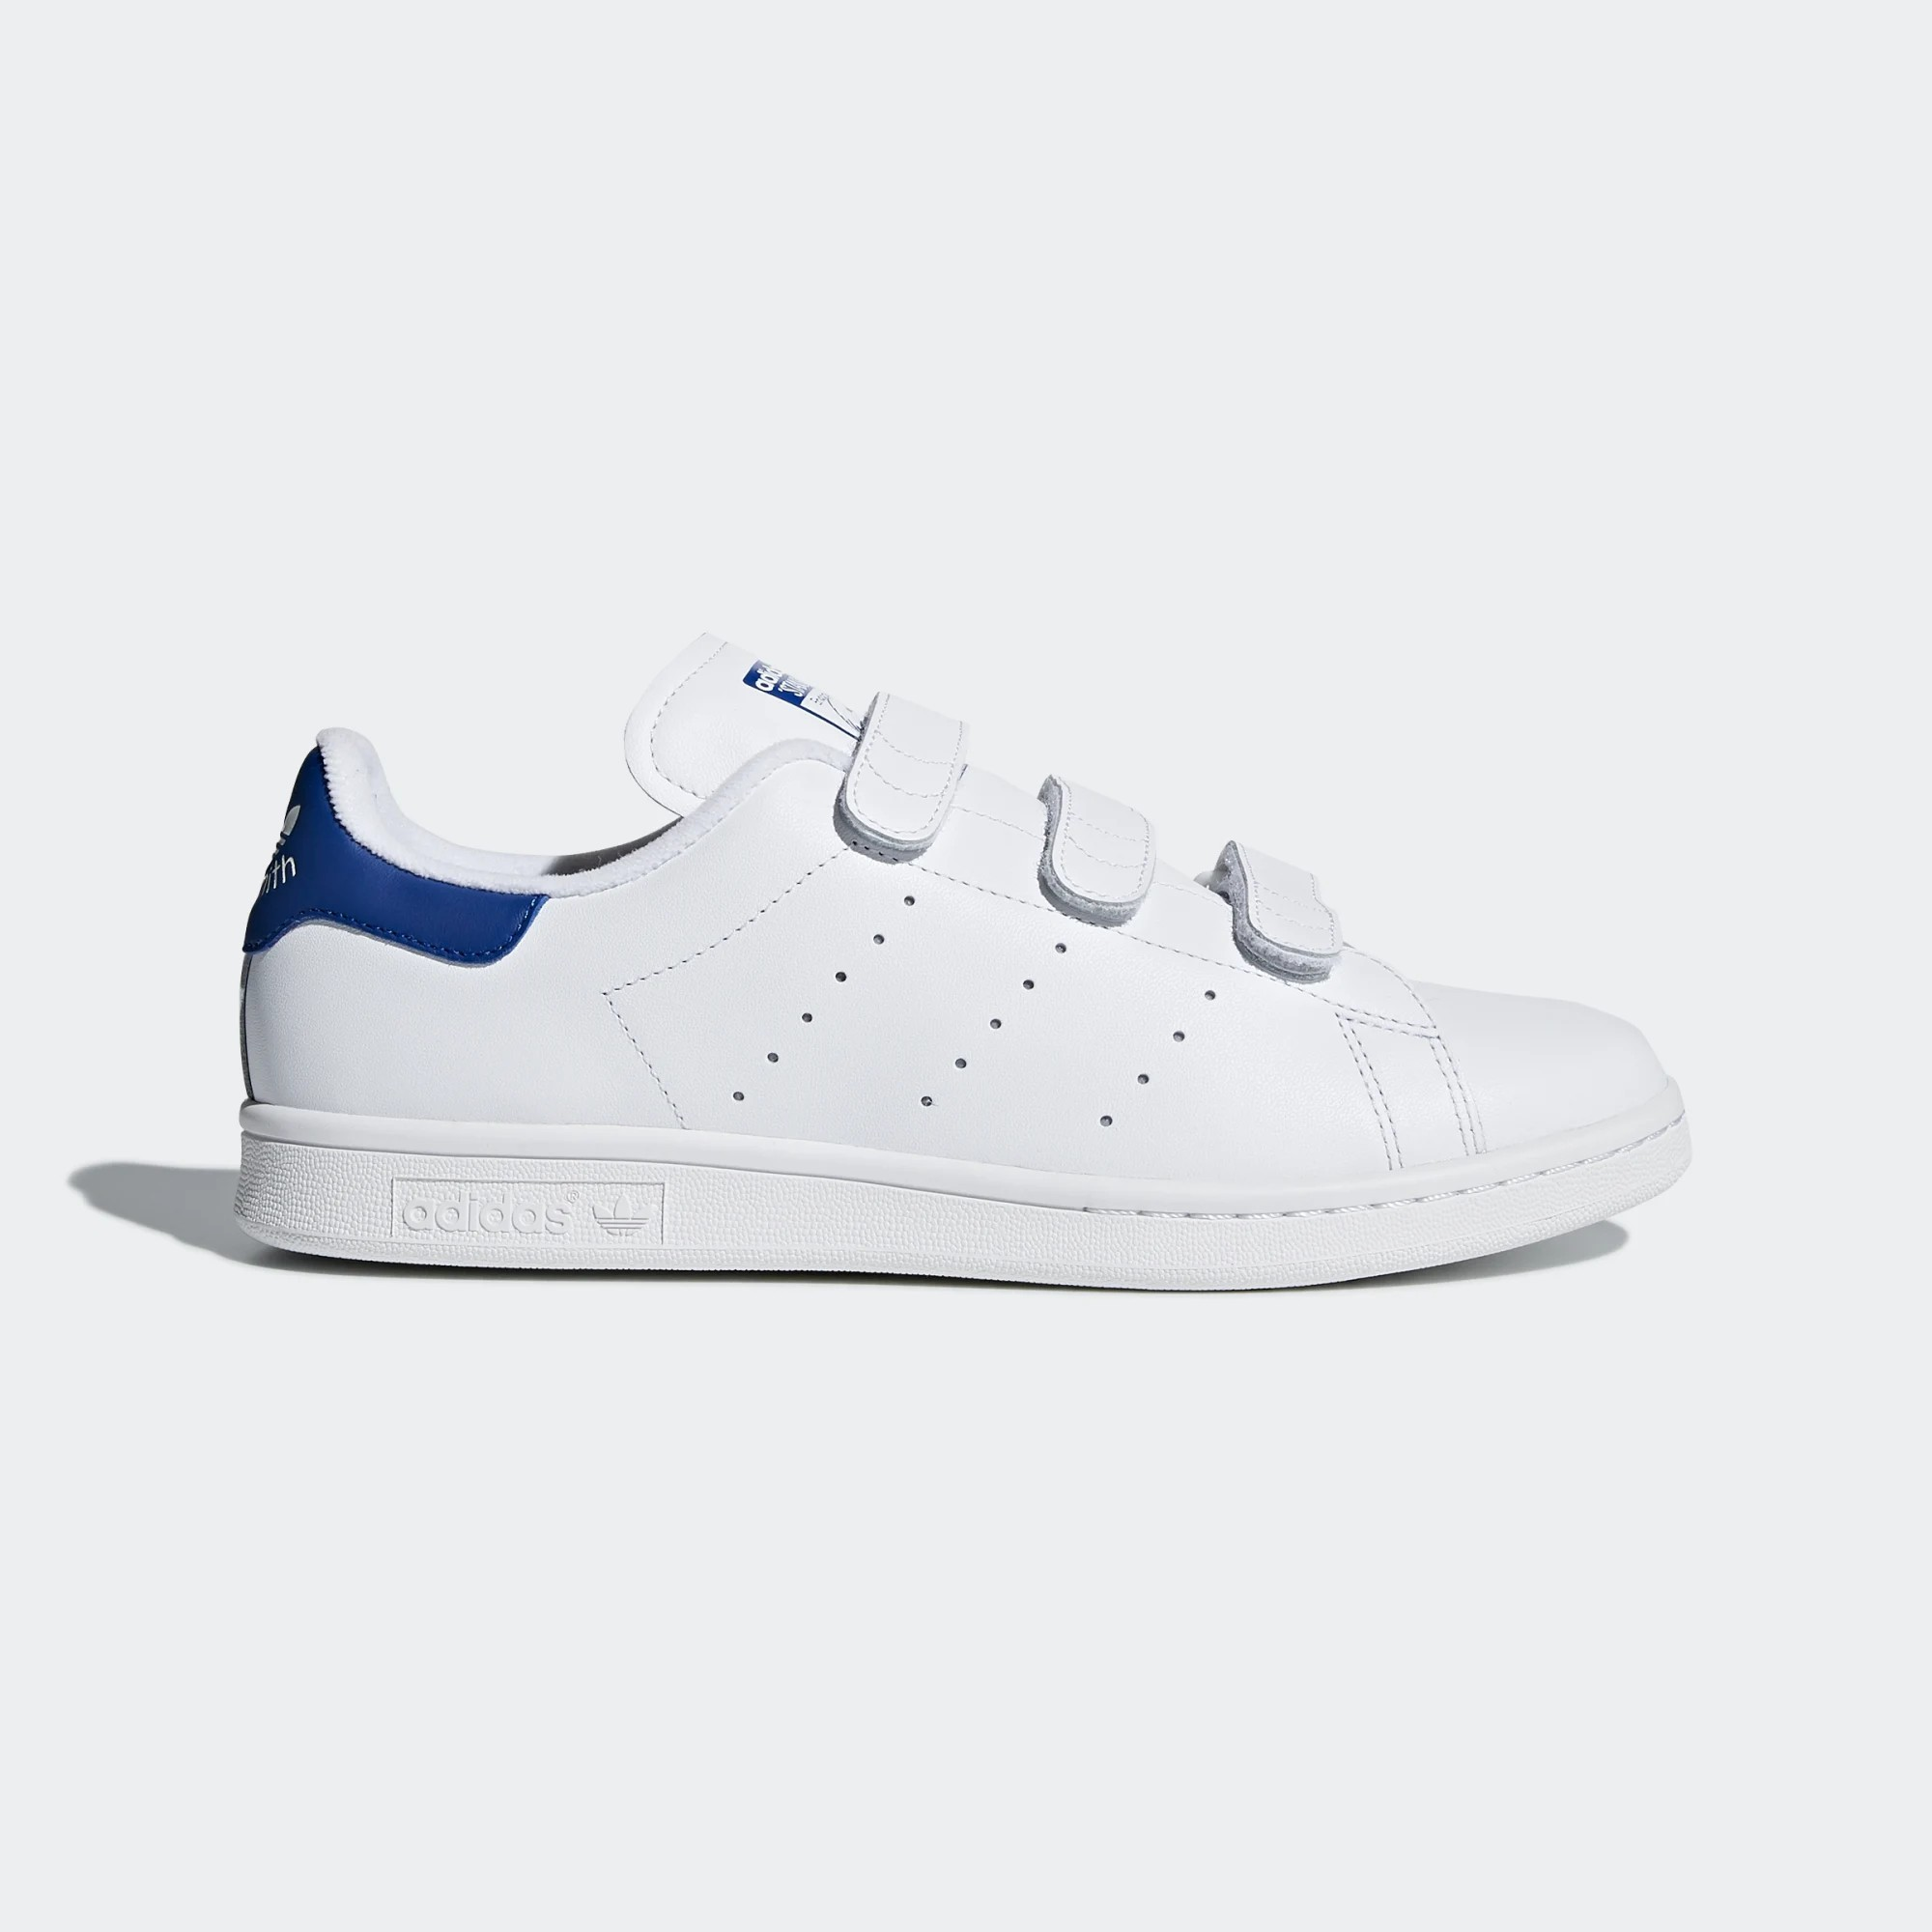 Adidas Originals Stan Smith CF S80042 White/Blue